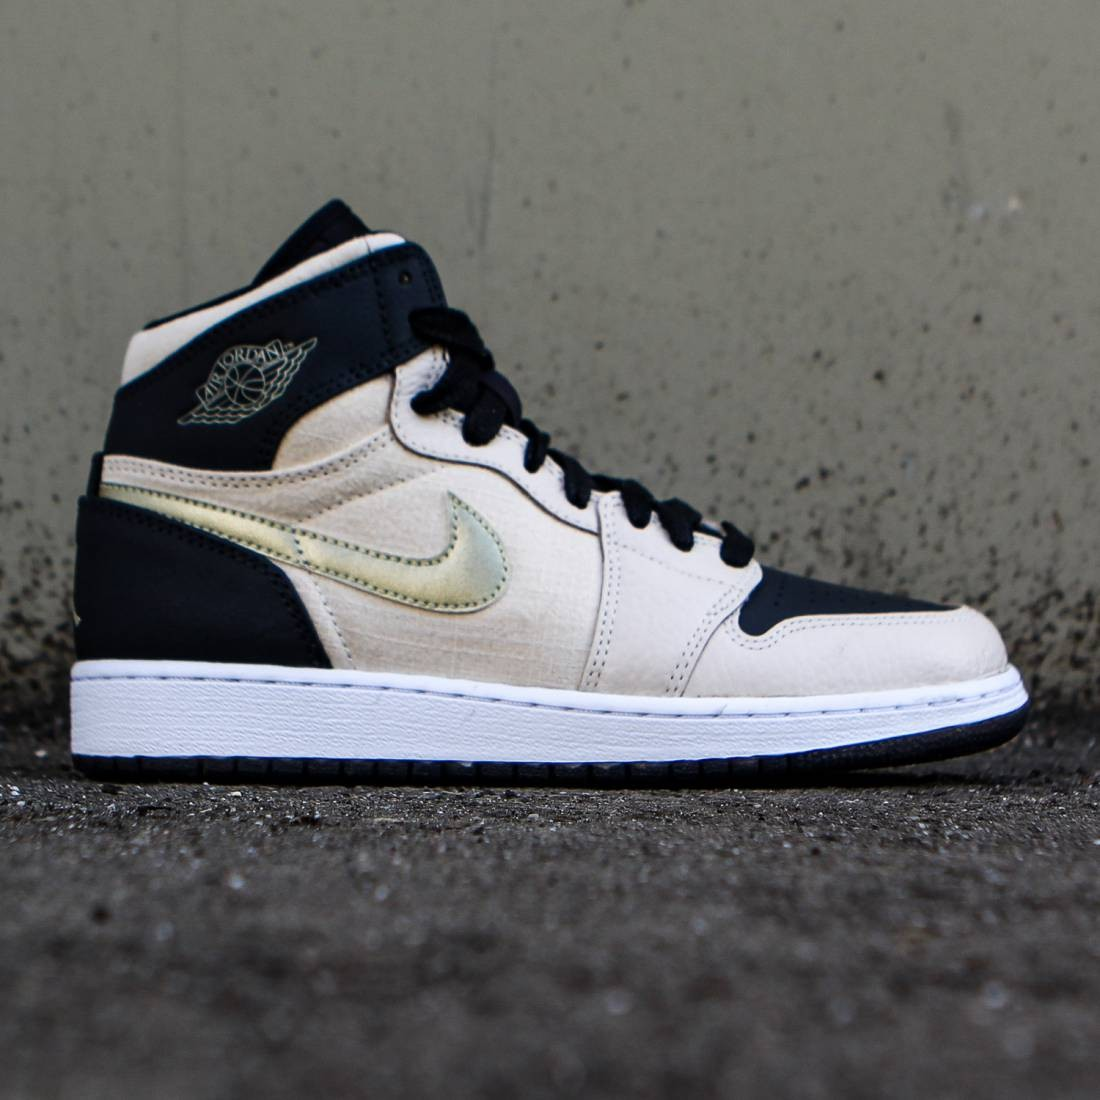 58f87c9e62af59 ... promo code for jordan big kids air jordan 1 retro high gs pearl white  black white